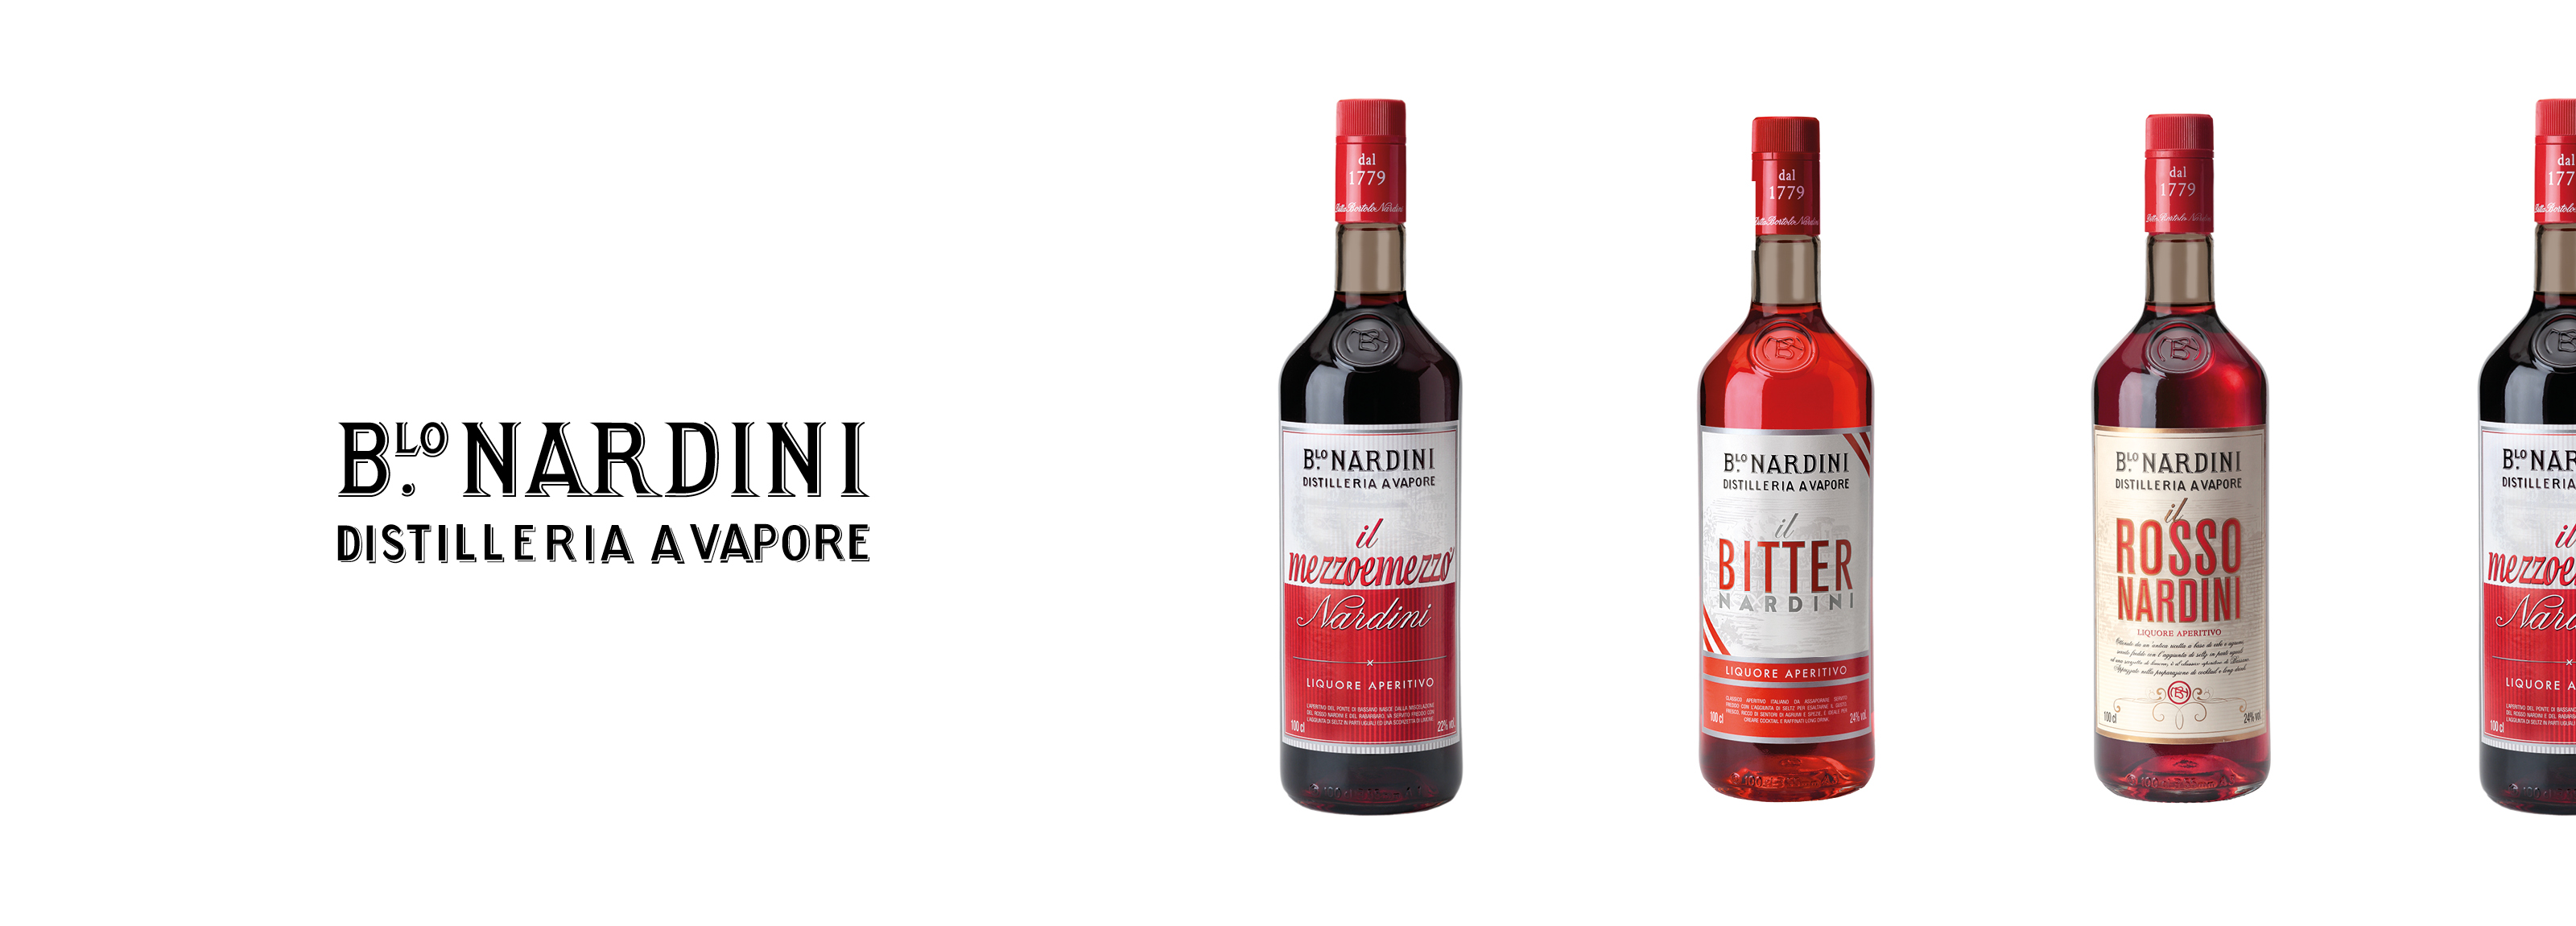 Brand new label design signed by Hangar Design group for Nardini.